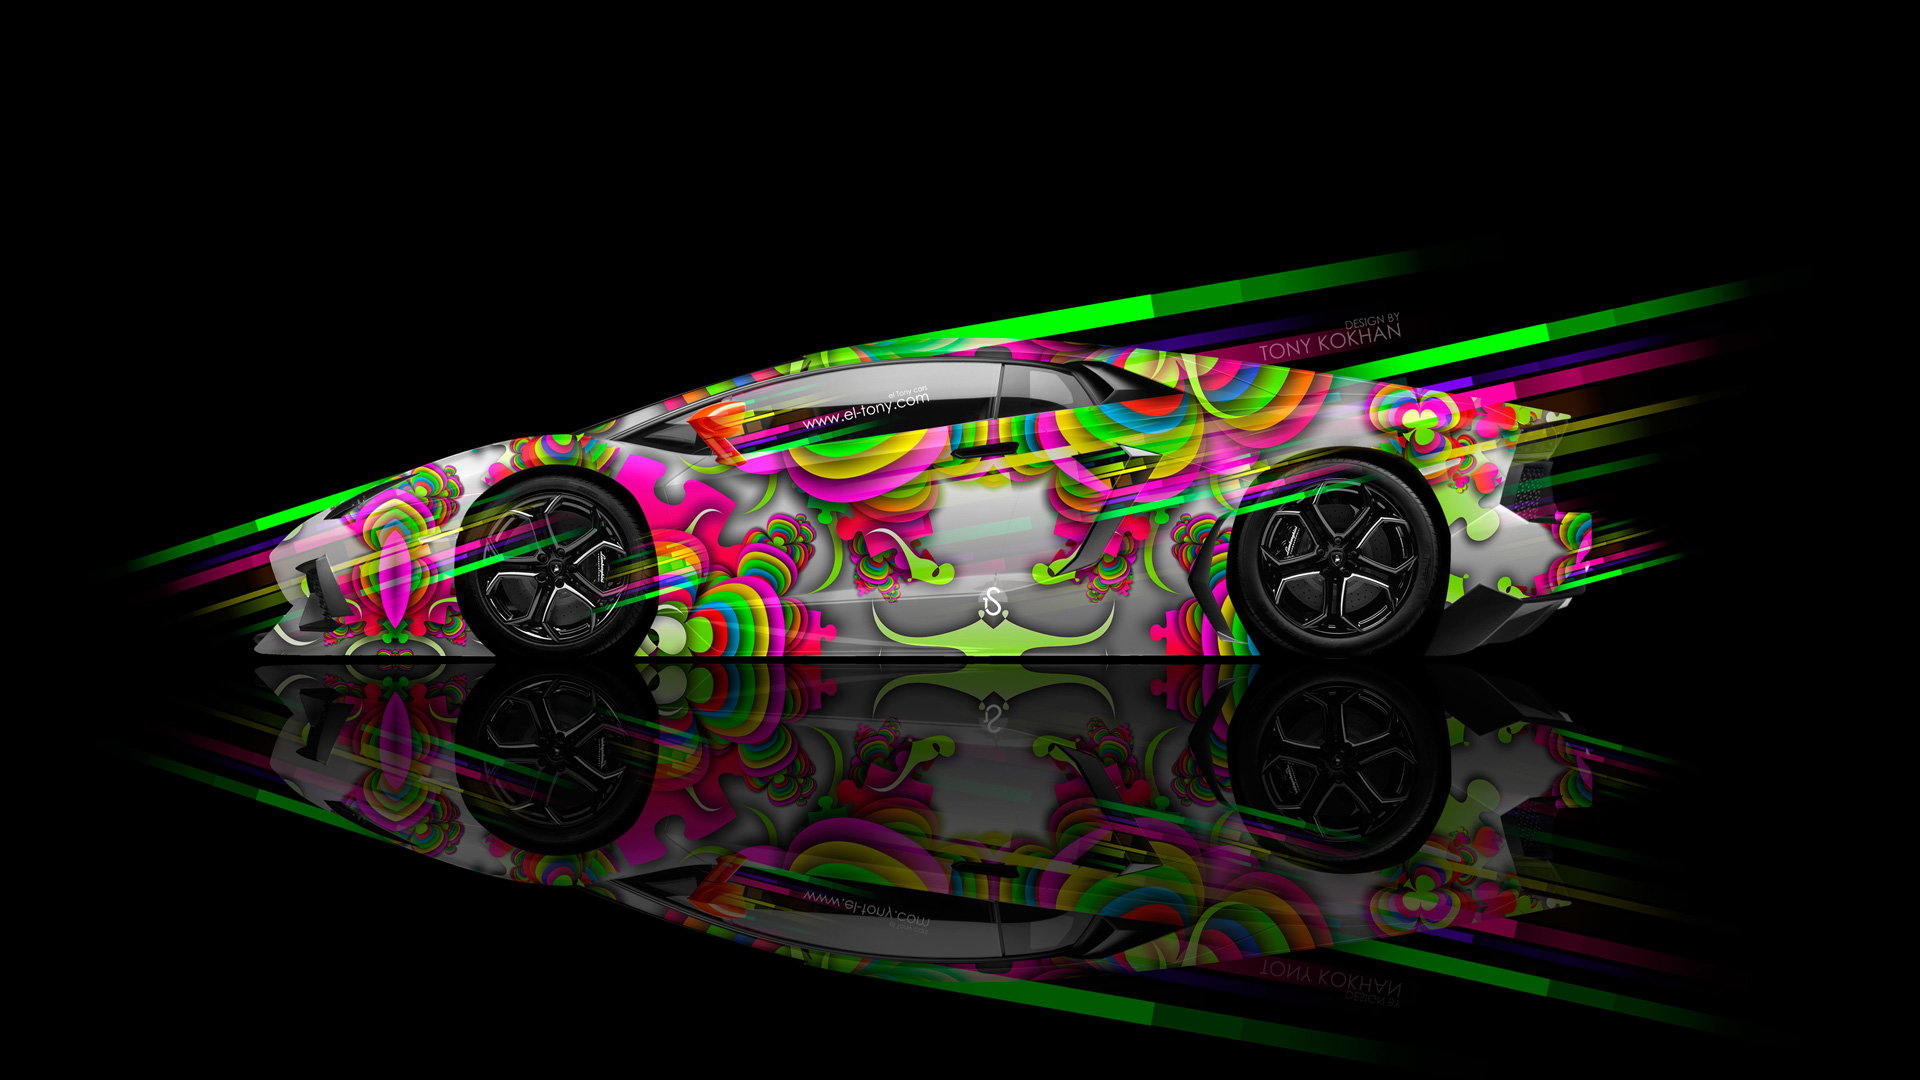 Incroyable Lamborghini Aventador Side Super Speed Abstract Aerography Car